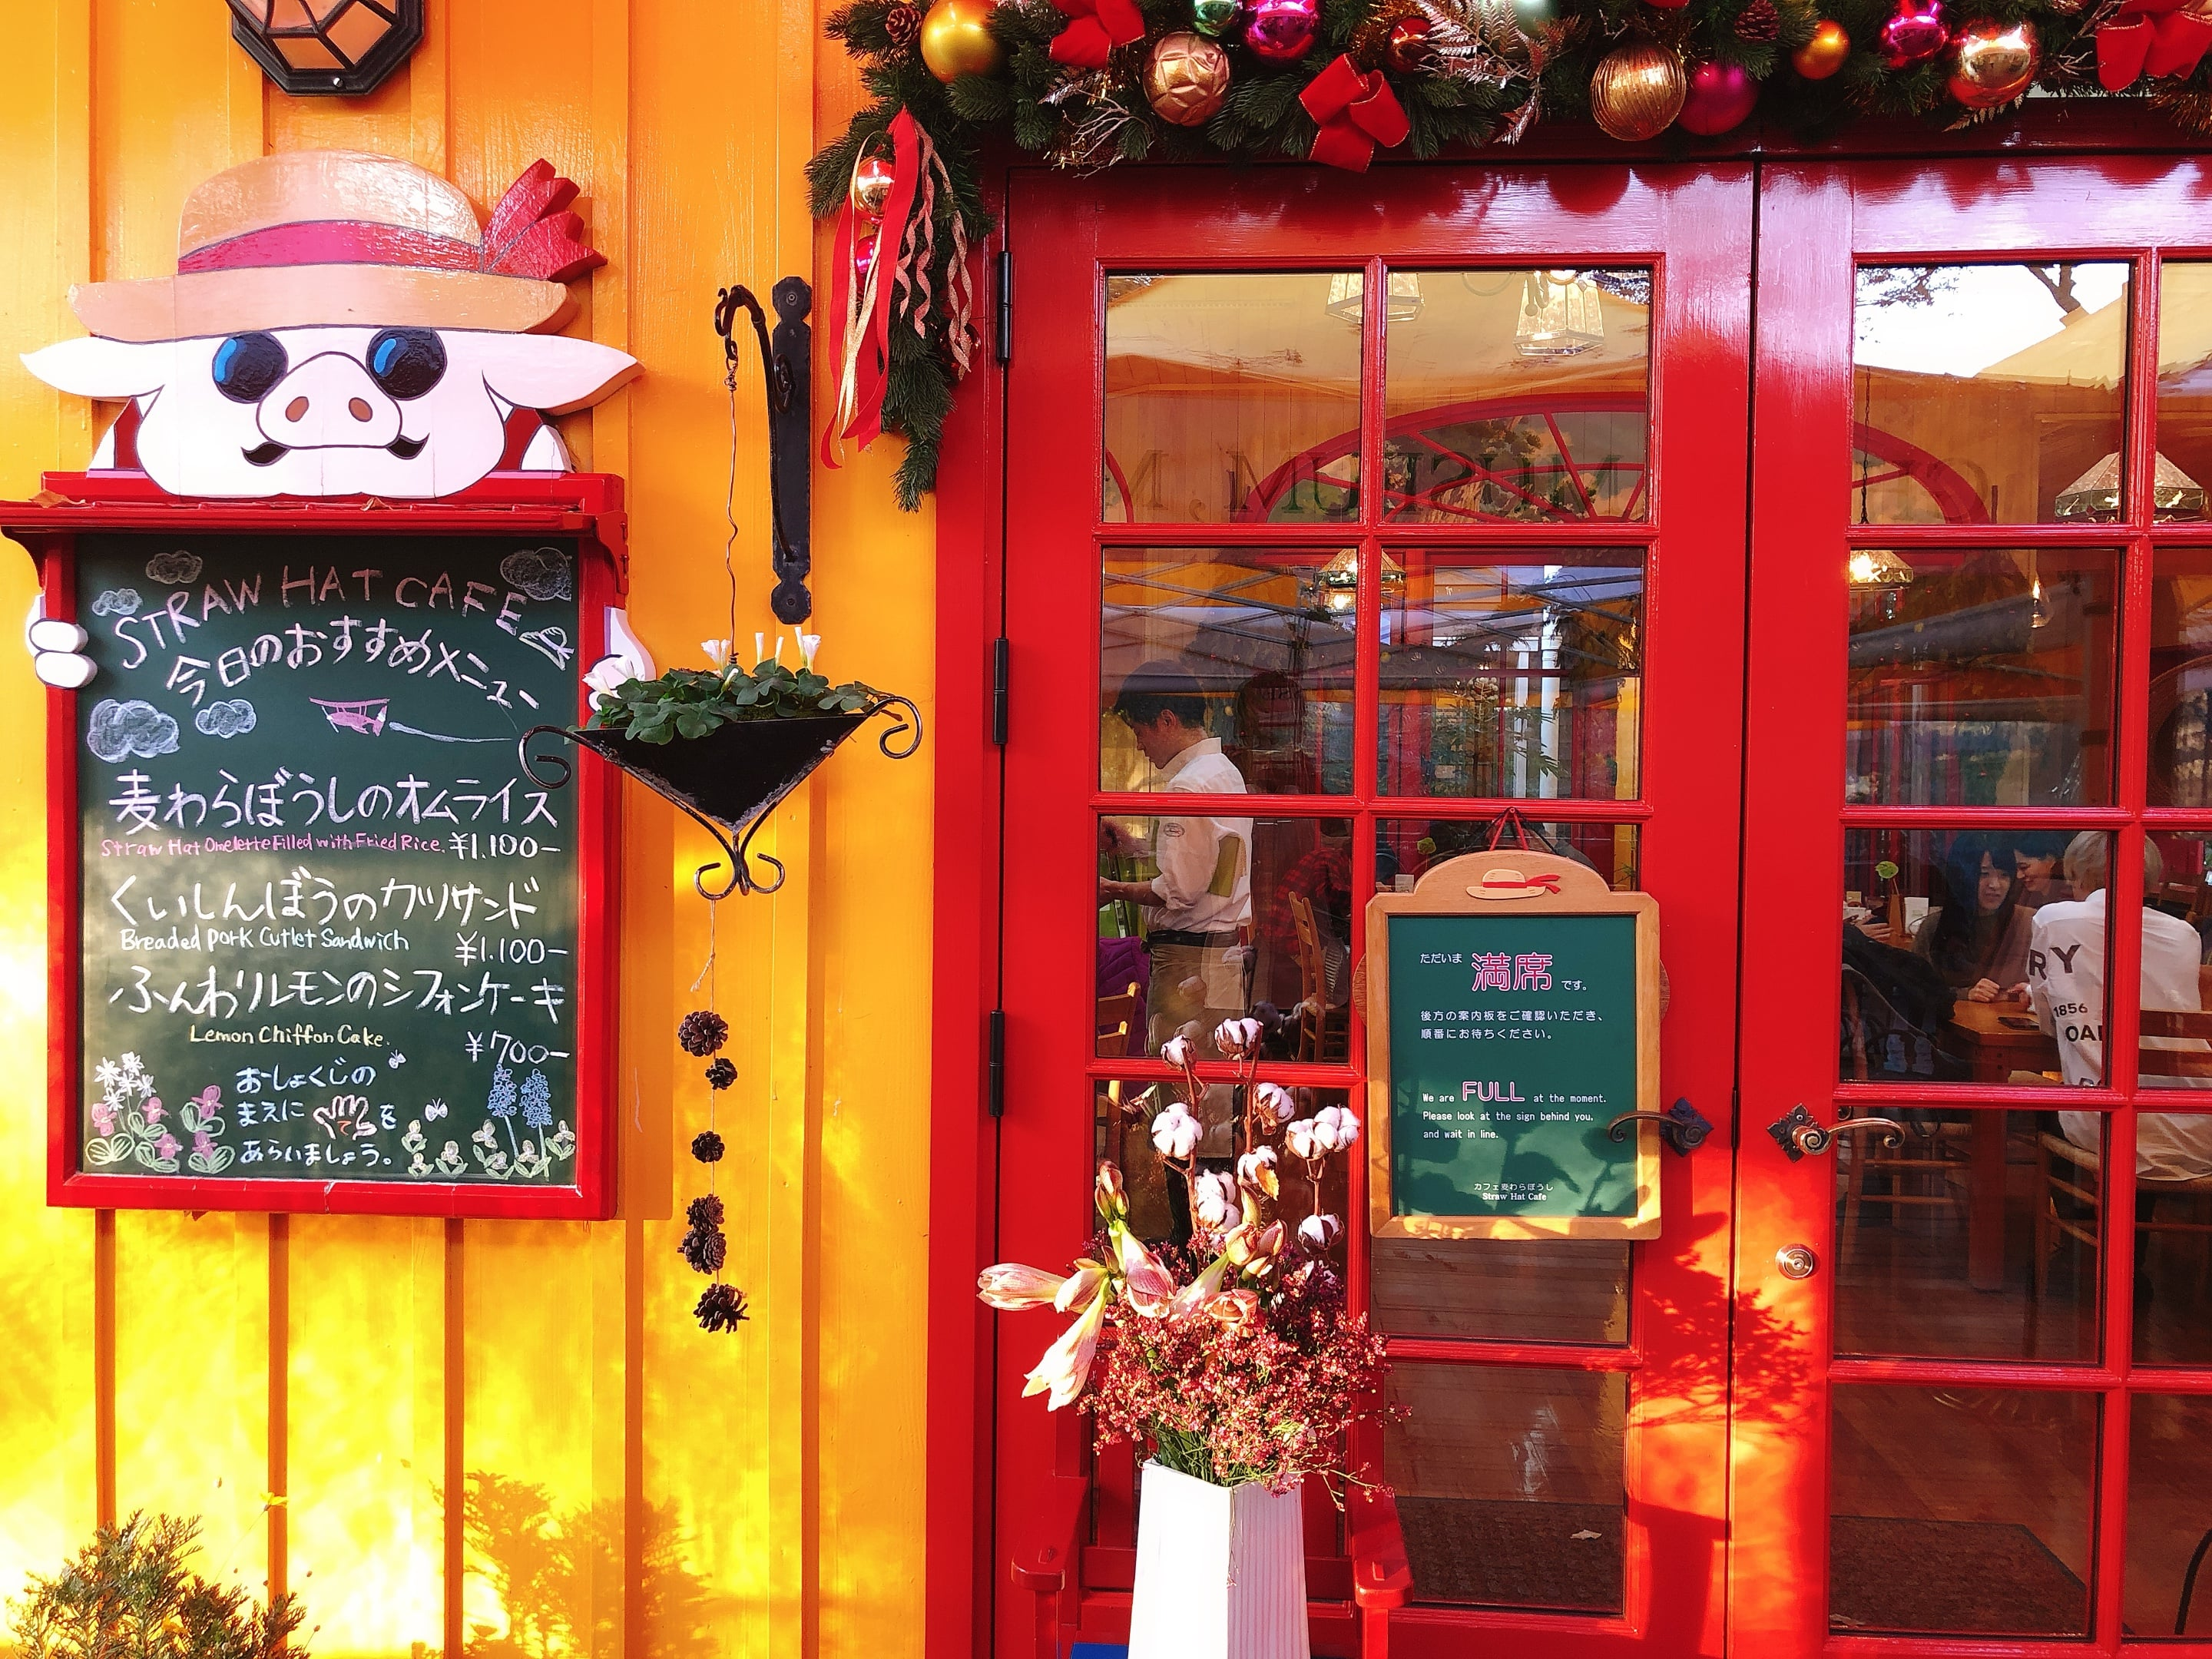 The entrance of Straw Hat Café